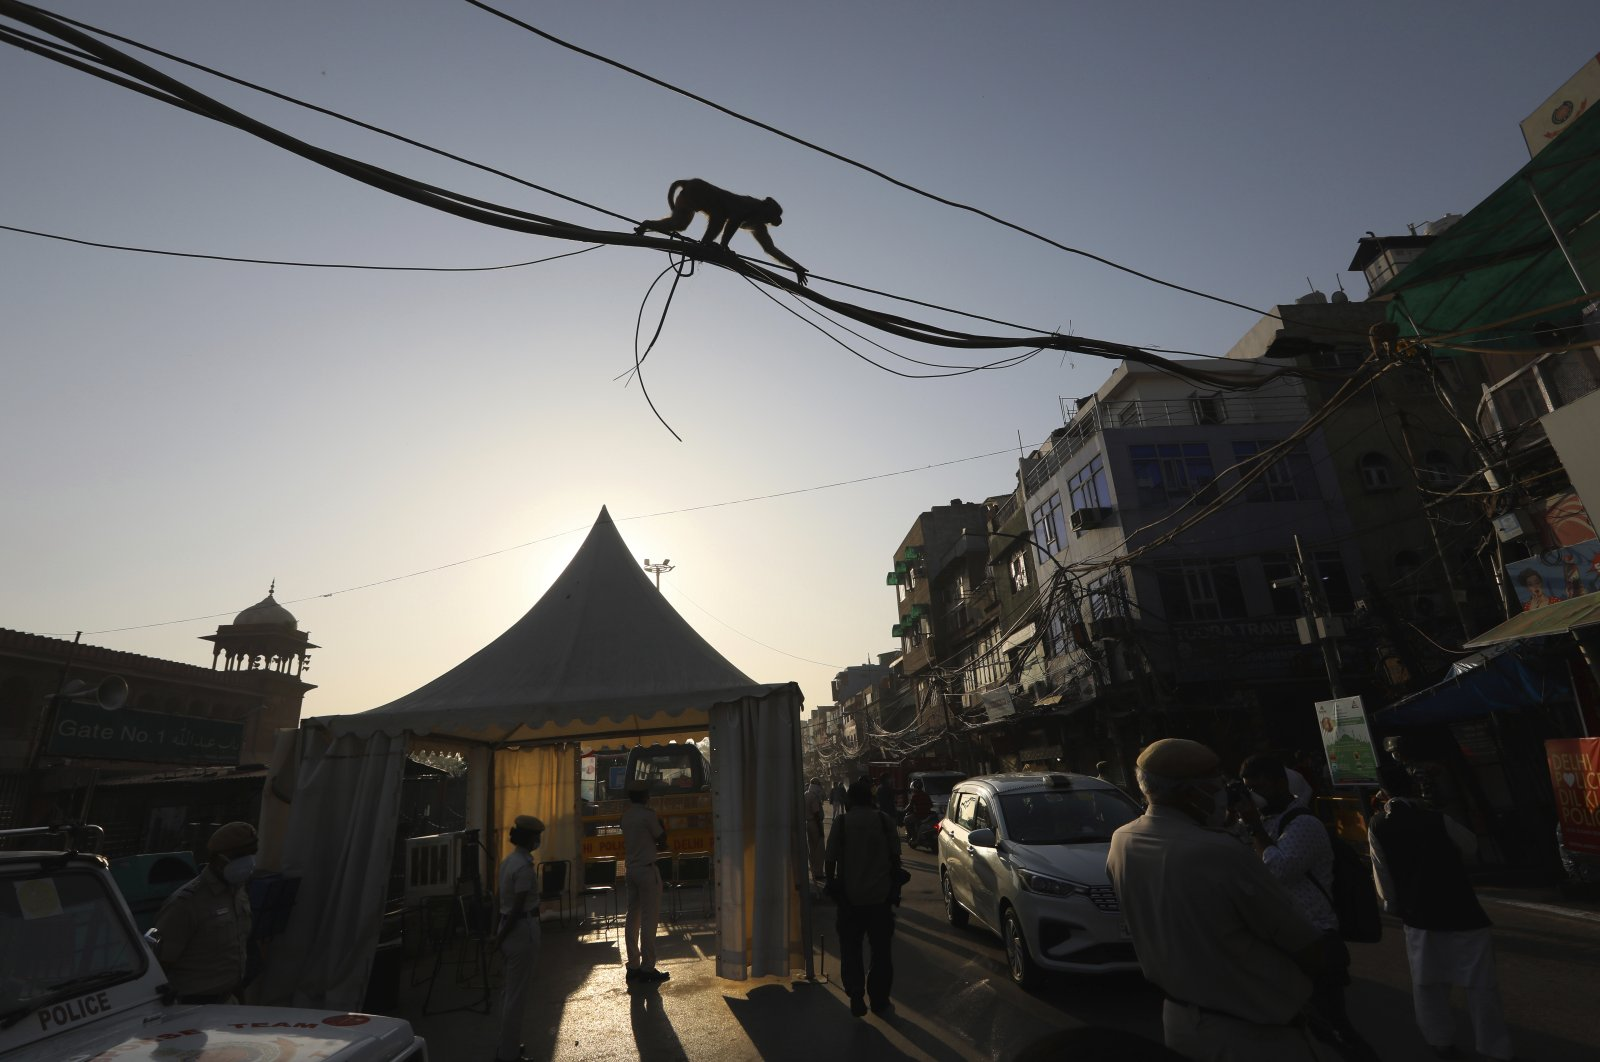 A monkey walks through power cables during Eid al-Fitr near the Jama Mosque at the old quarters of New Delhi, India, Monday, May 25, 2020. (AP Photo)